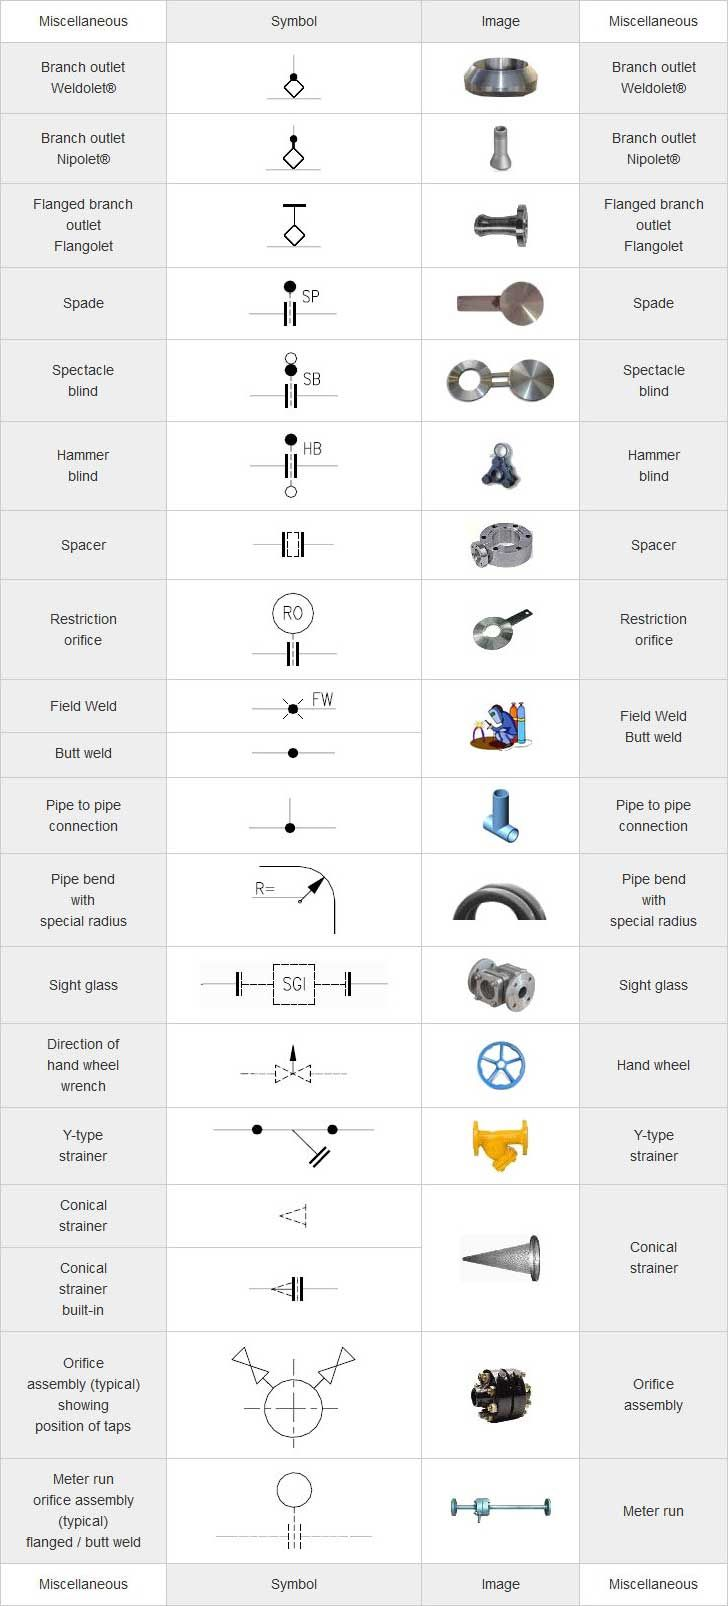 Boiler Wiring Diagram S Plan Rheem Gas Water Heater Mechanical Symbols For Isometric Drawings | Pneumatic In 2019 Engineering, Piping ...